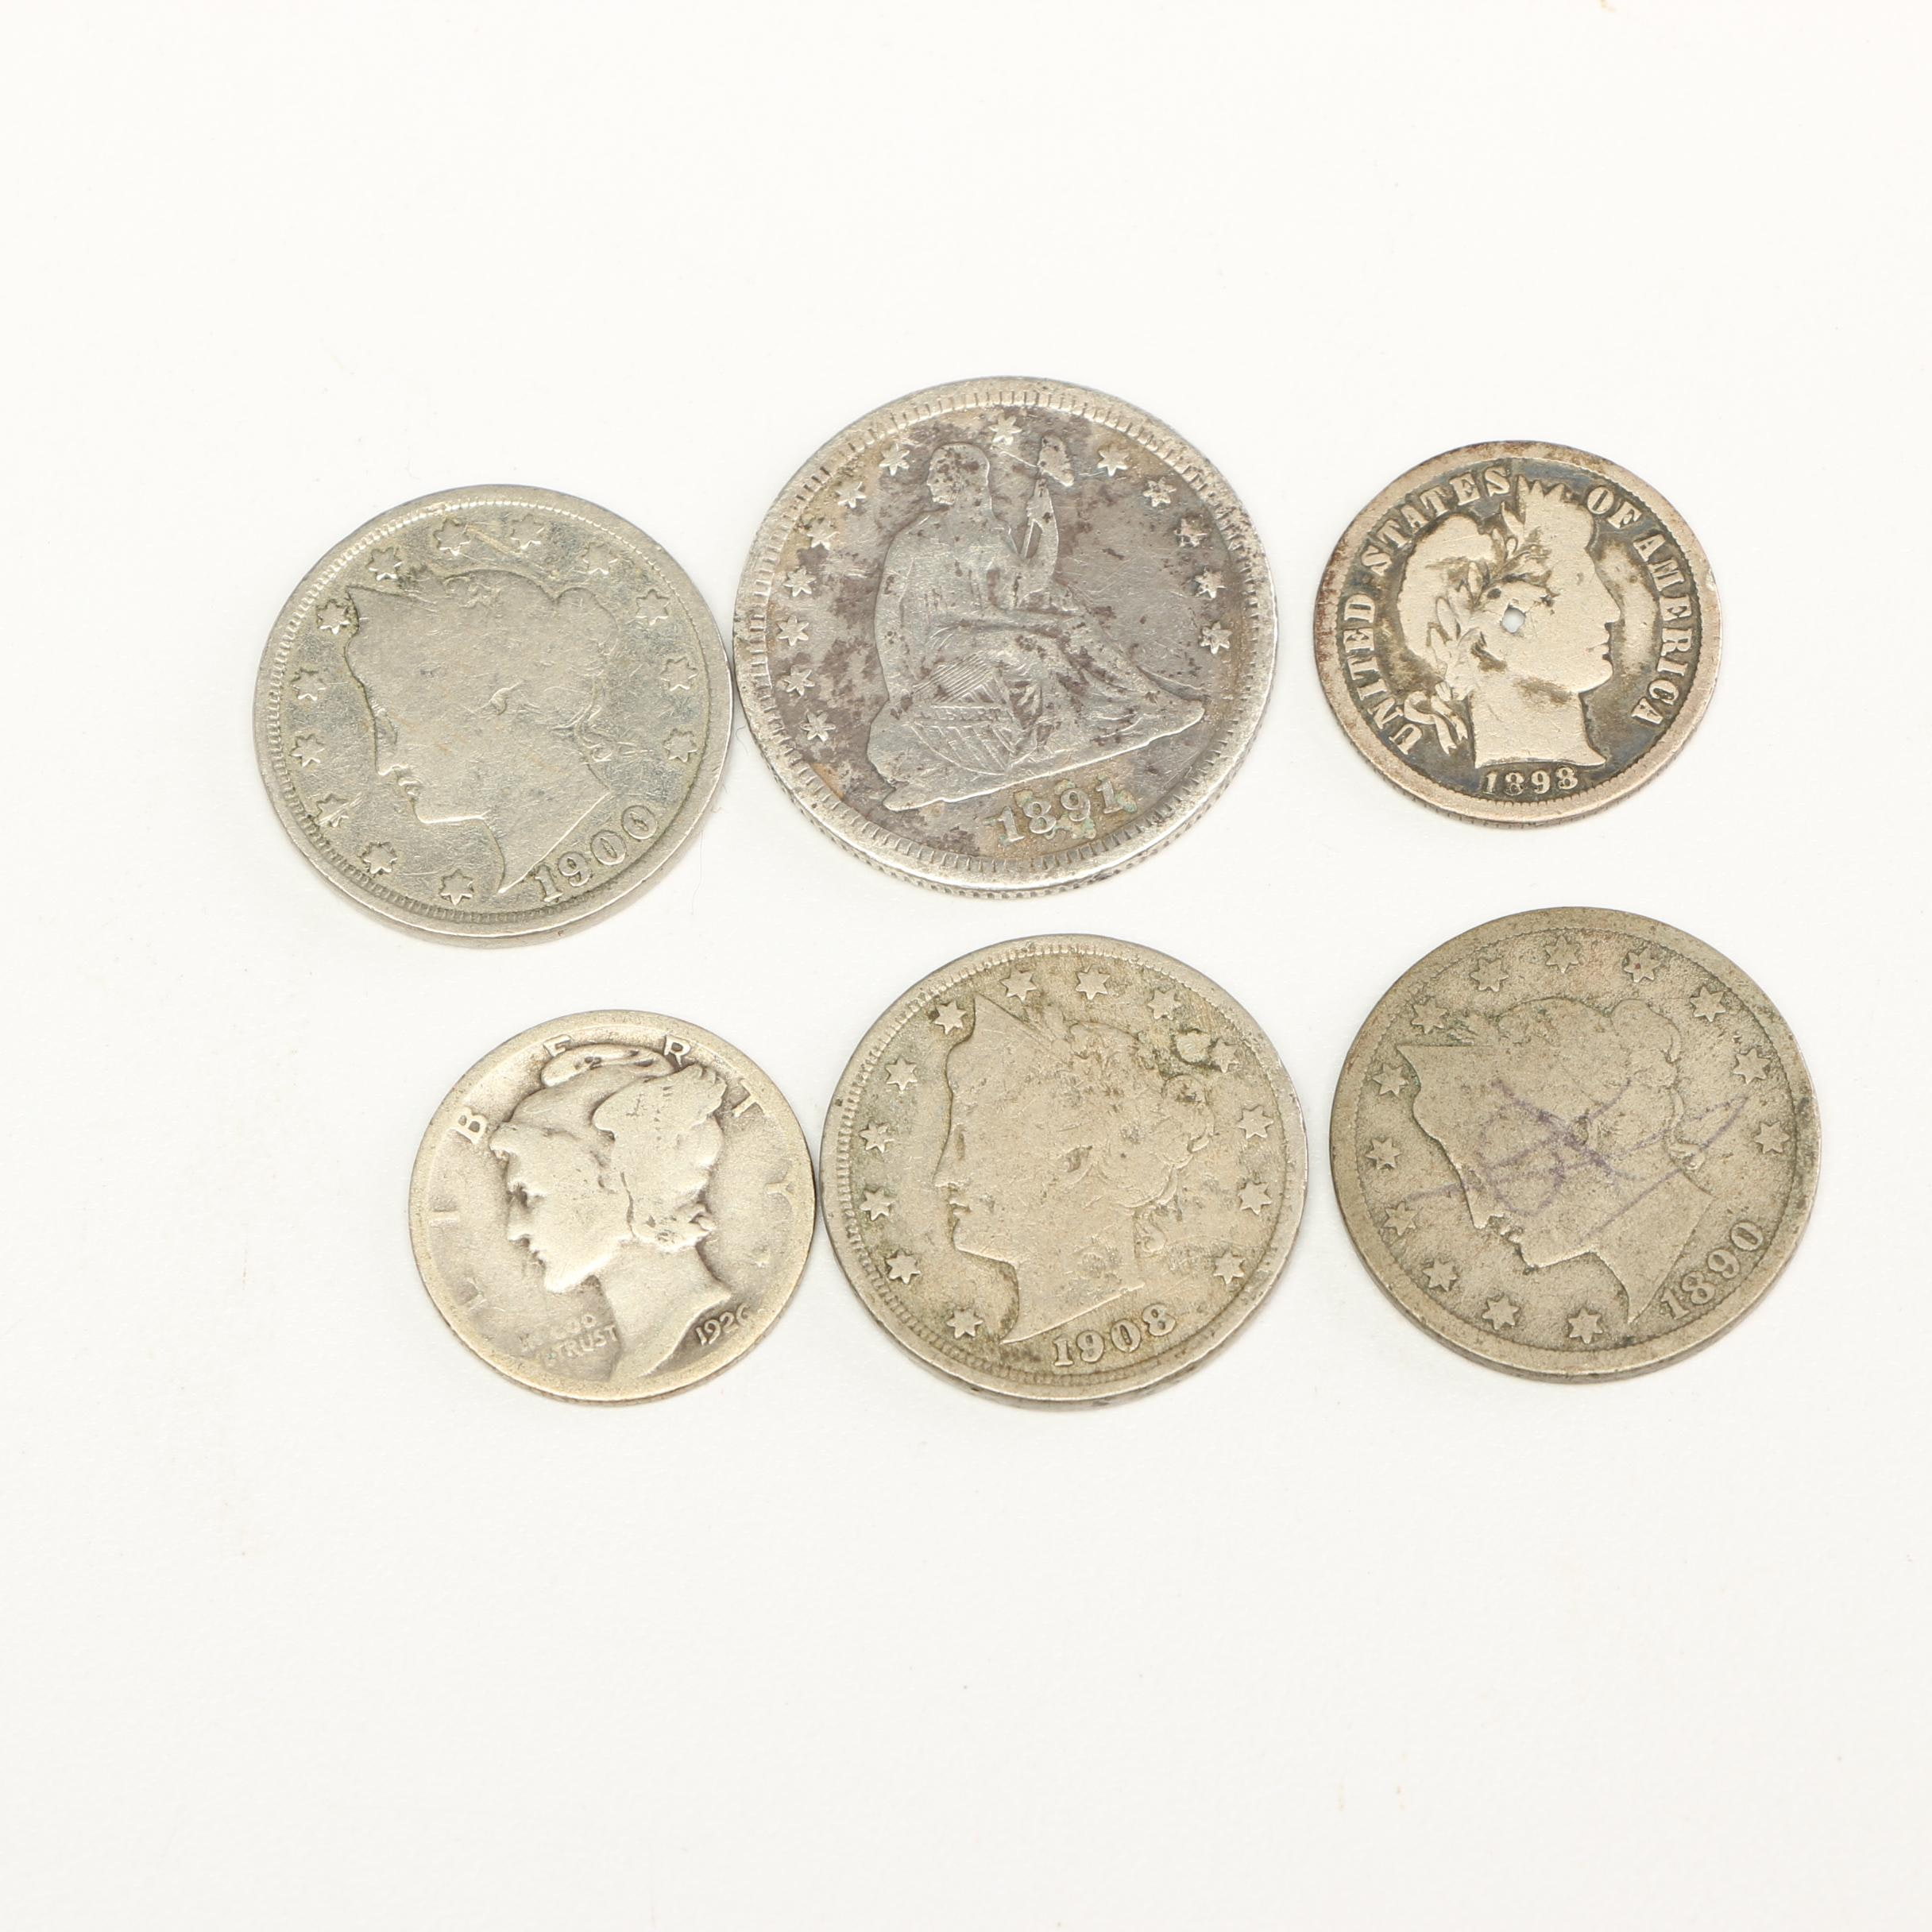 Collection of Antique U.S. Coinage including an 1891 Liberty Seated Quarter